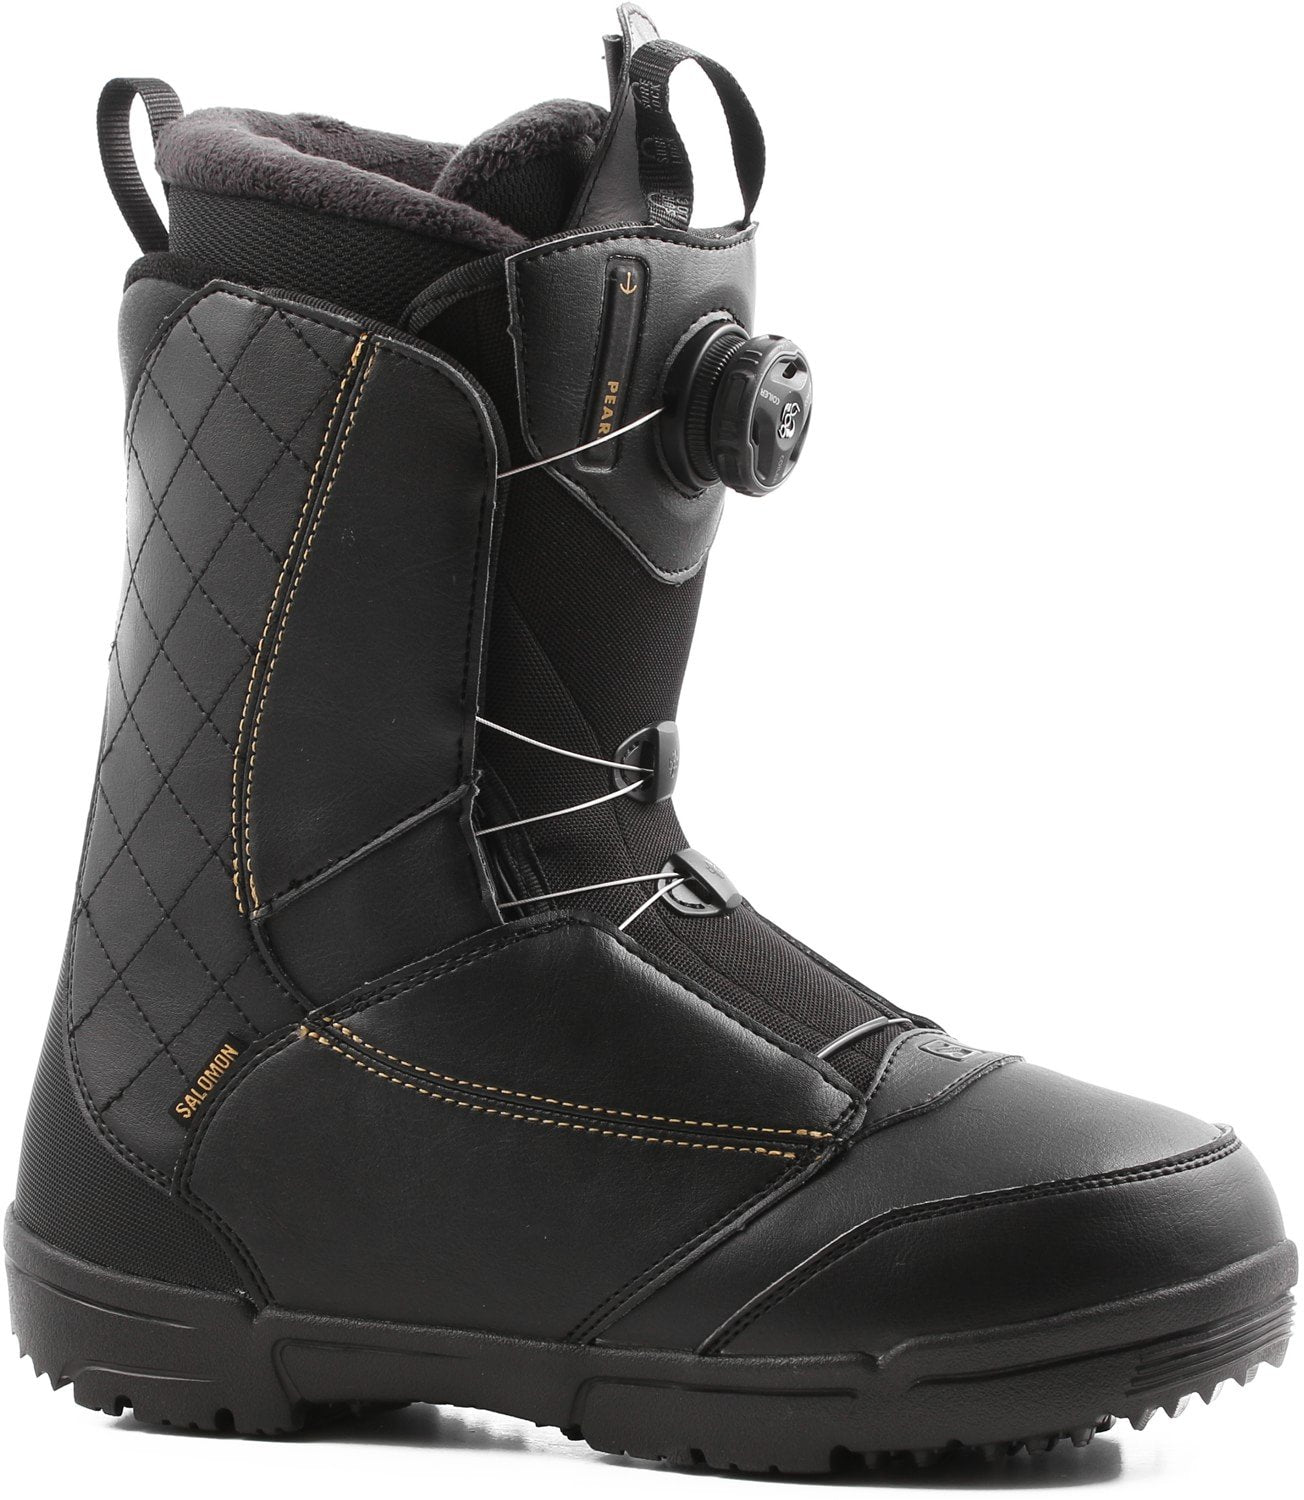 Salomon Pearl BOA Ladies Snowboard Boots 2018